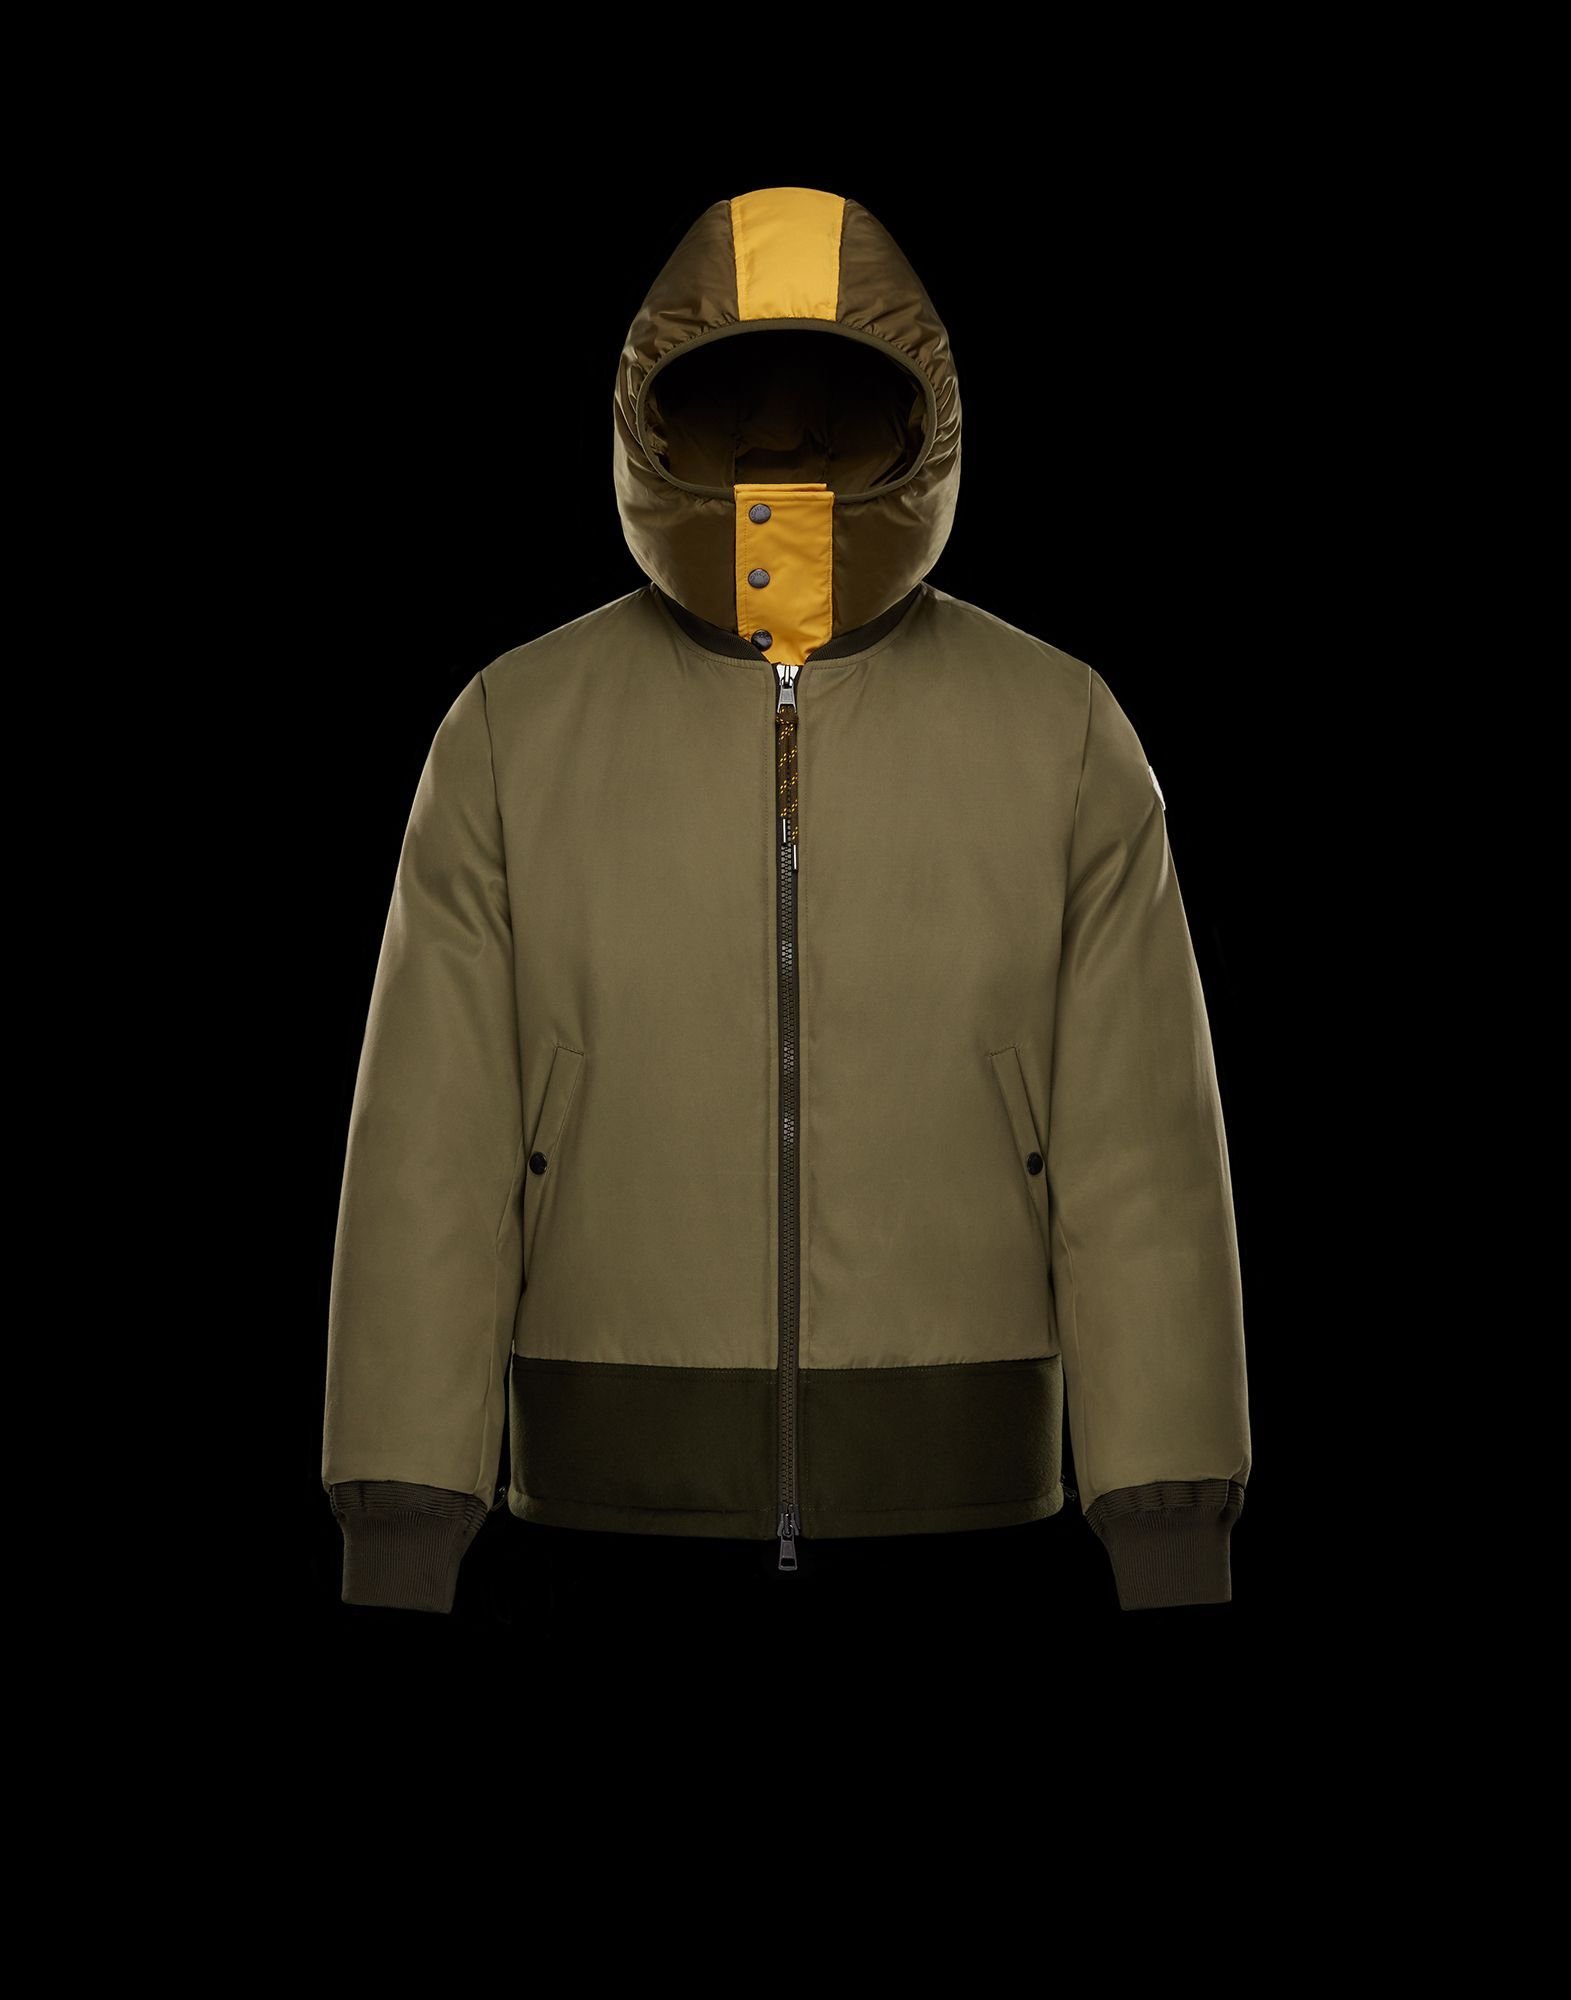 HASTIERE in Overcoat for Men | Moncler